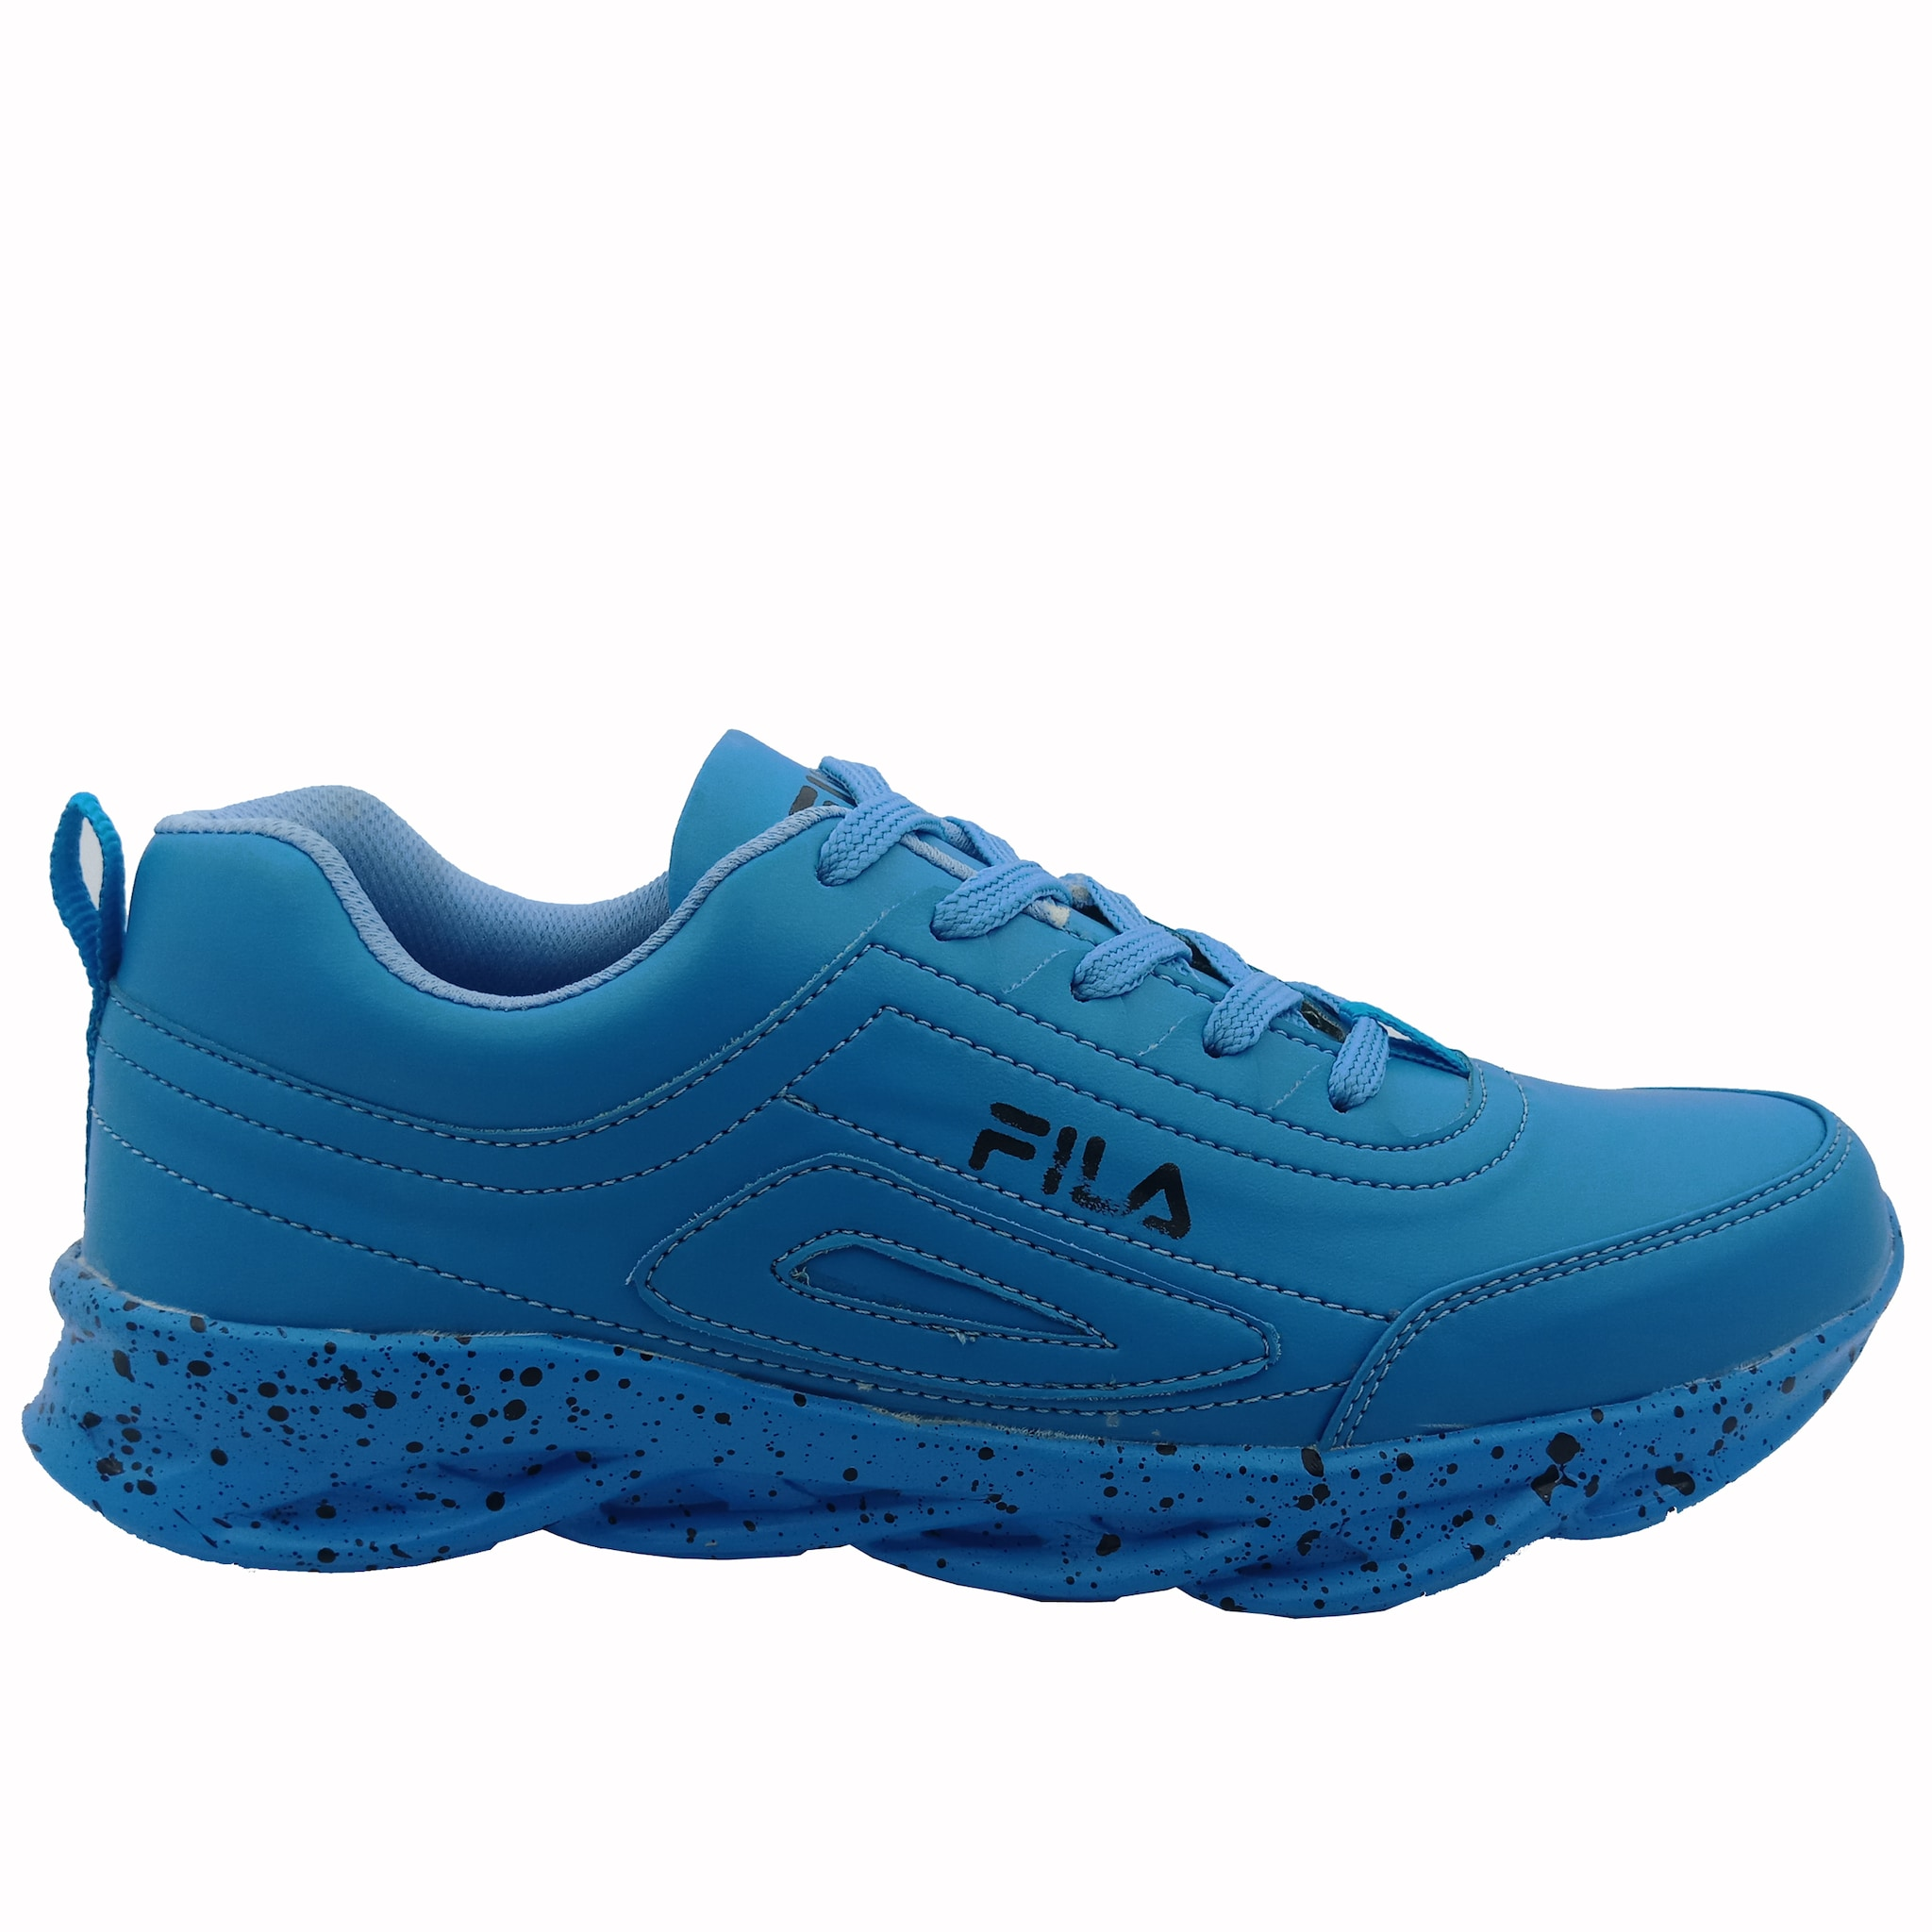 A.P.S COMFORTABLE STYLISH TRENDY & FASHIONABLE SHOES APS028 (SKY BLUE,6-10,8 PAIR)